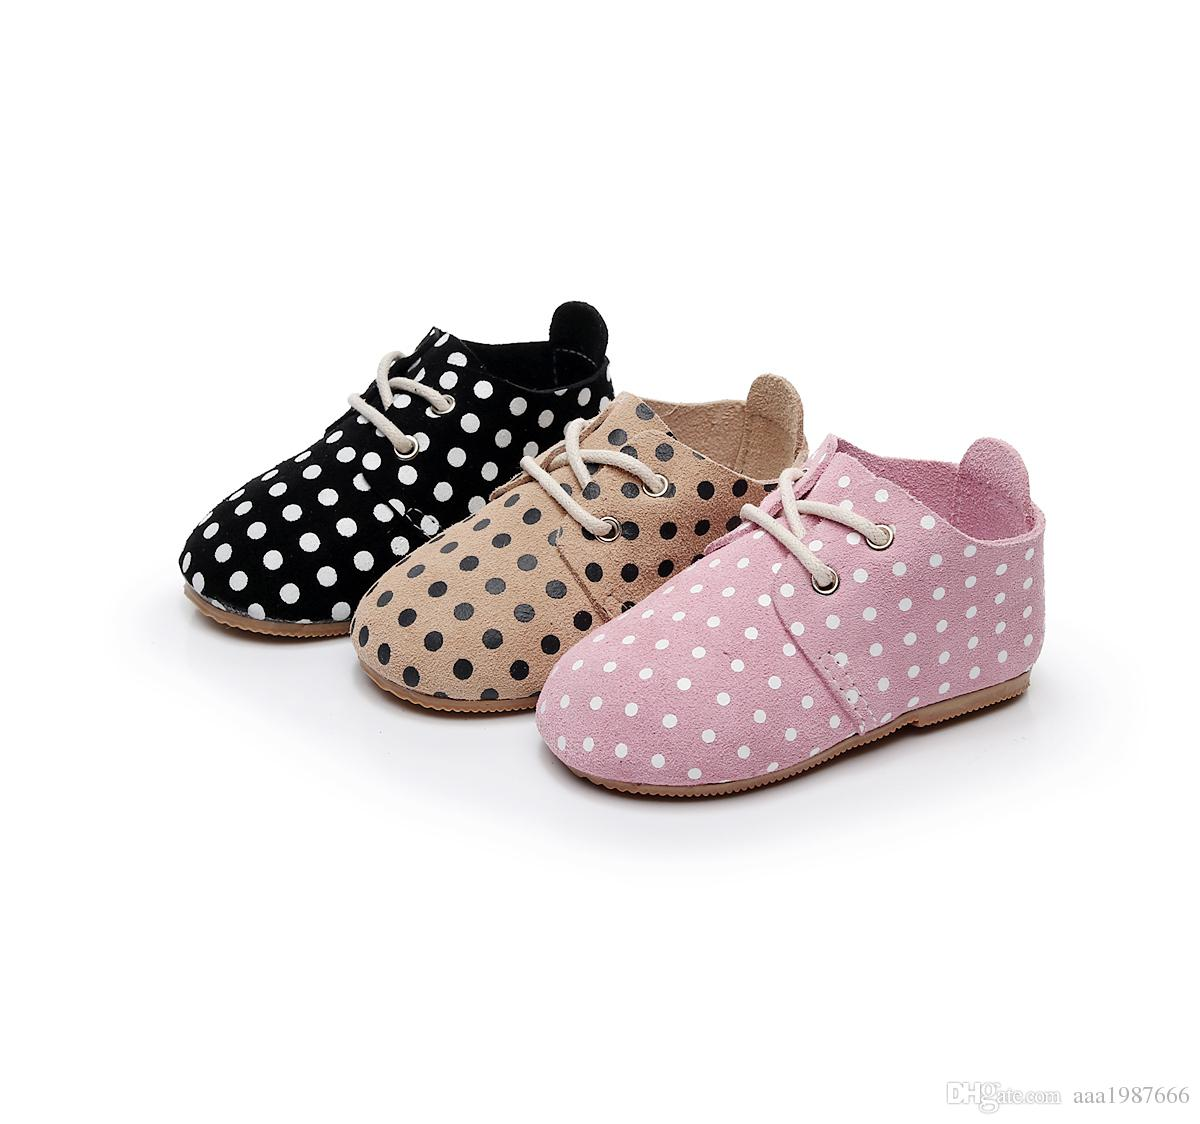 2018 Spring new High quality hard rubber sole genuine leather handmade polka dot baby maccasins shoes kids shoes baby boots